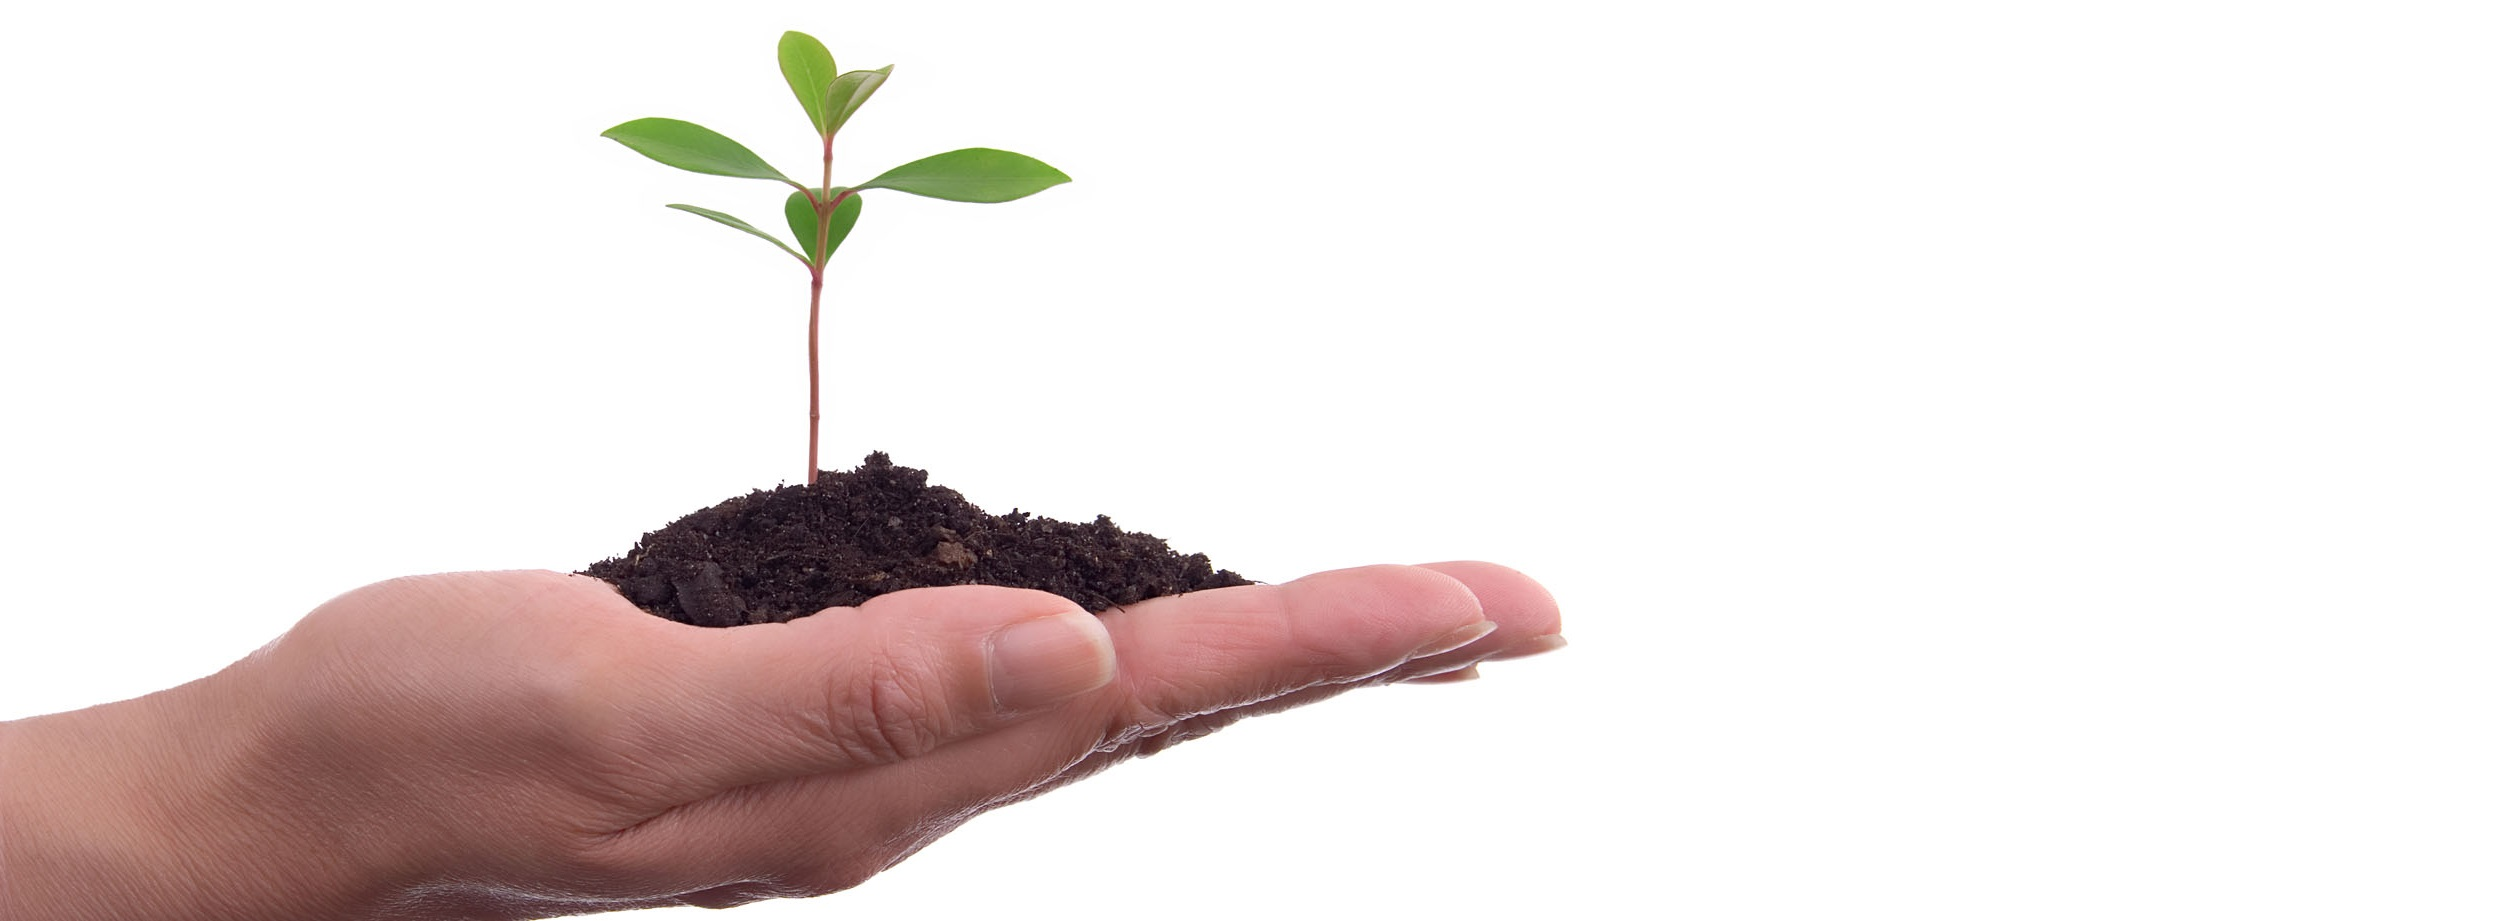 Human Hands With Plant